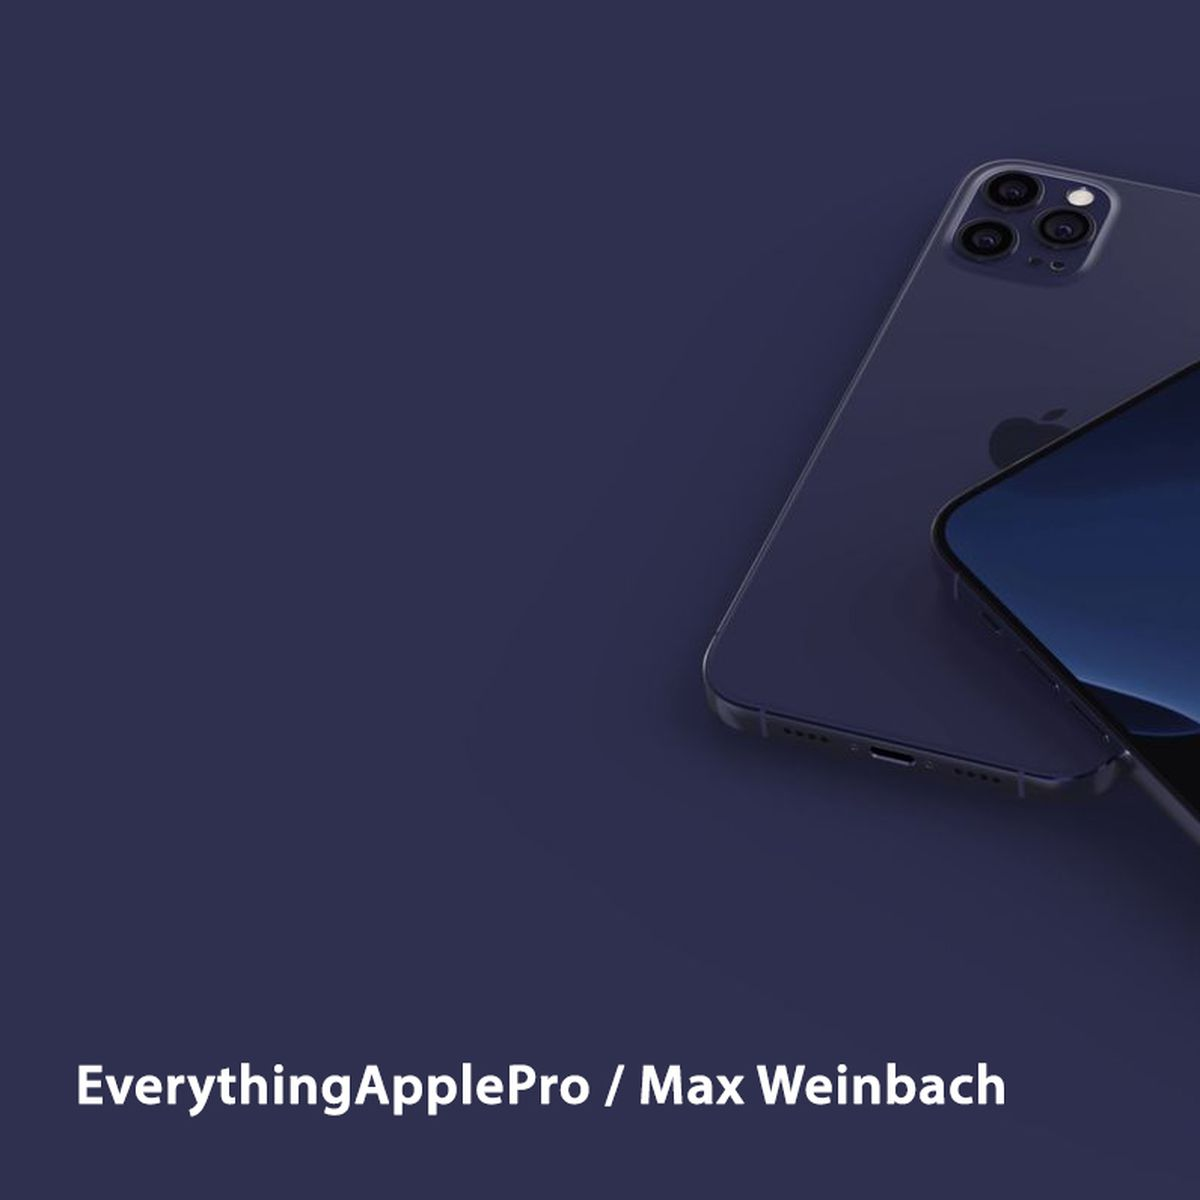 Dark Blue Color Option Expected To Replace Midnight Green For Iphone 12 Pro Macrumors